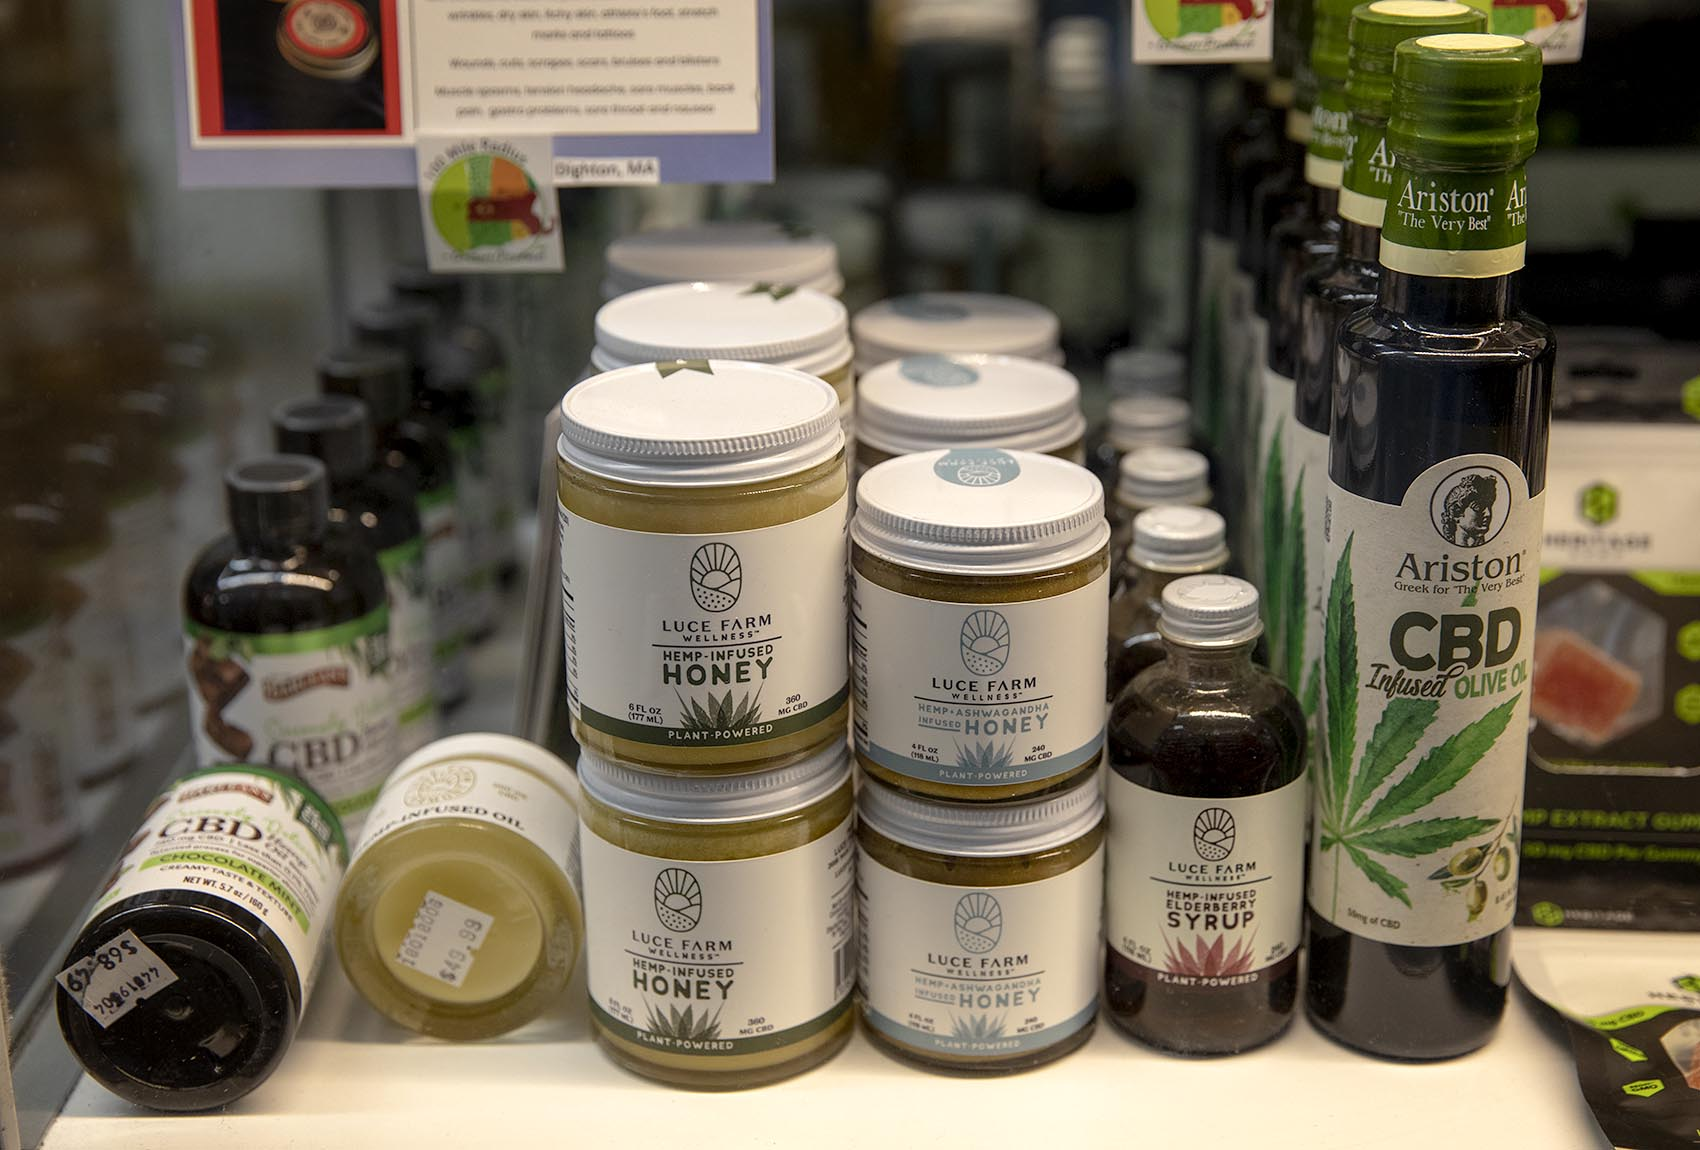 Crackdown On CBD Products Frustrates Mass  Businesses